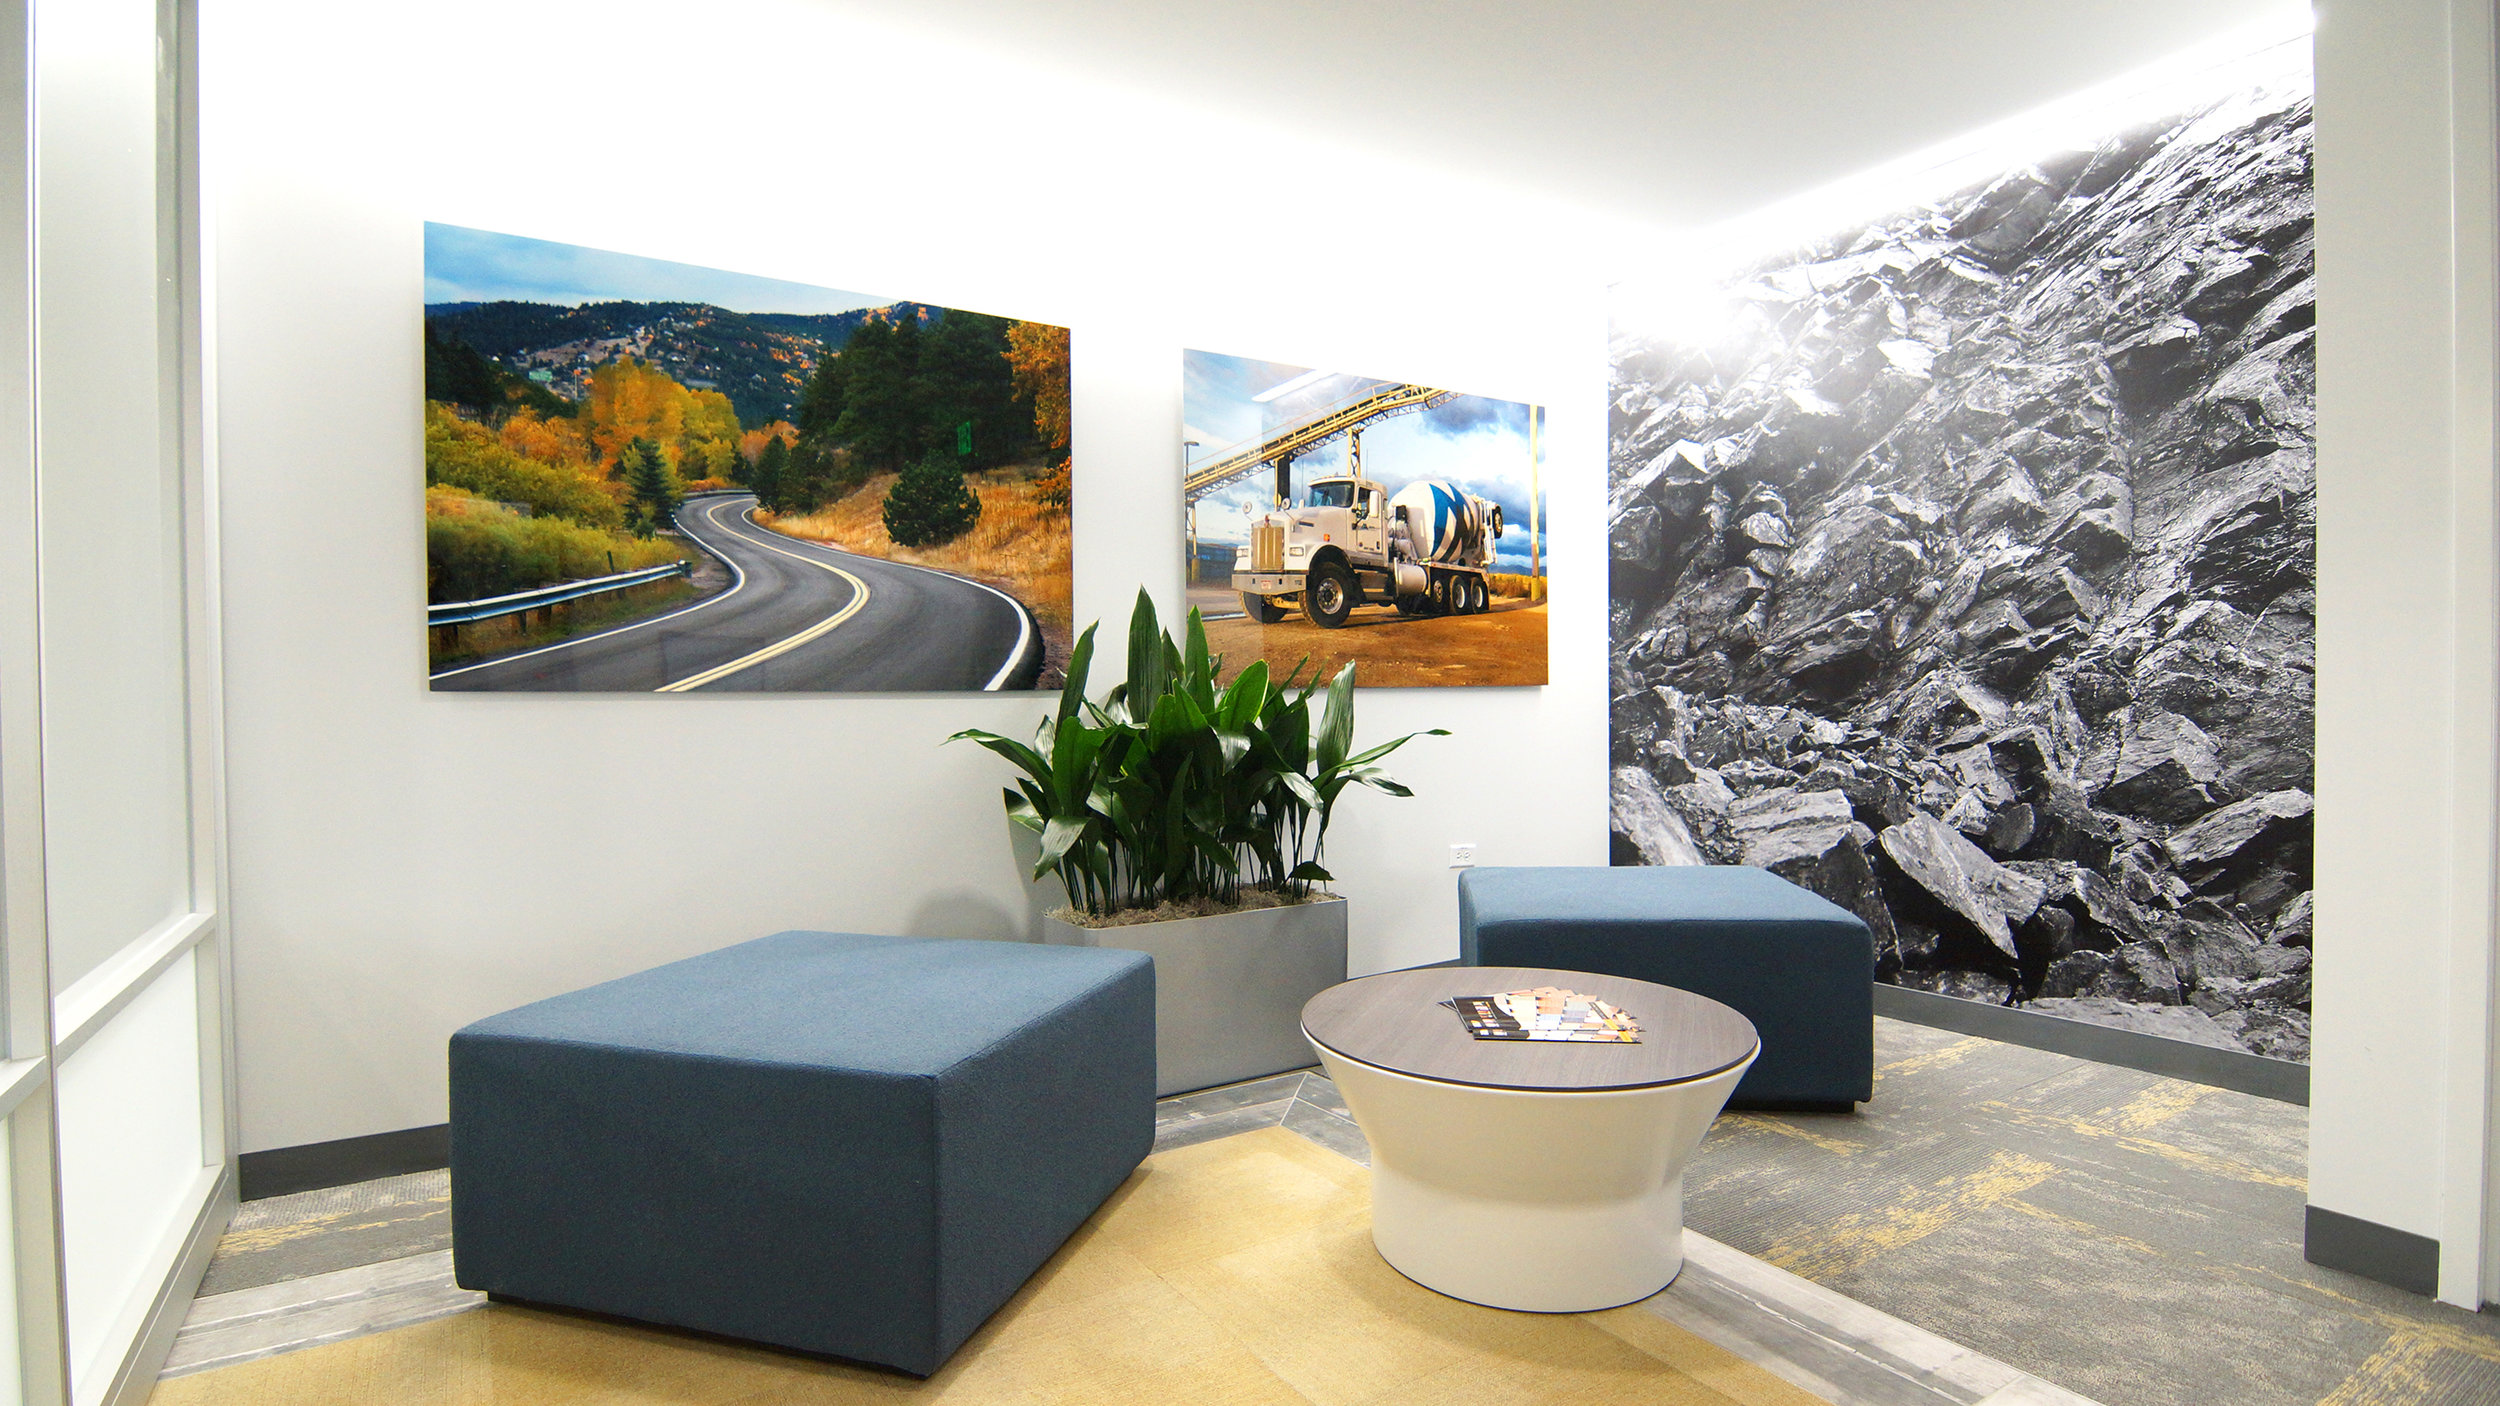 Kestrel's utilization of custom and original imagery throughout the new space reflects the different aspects of Martin Marietta's work was highly important to the client. This photo shows the public side of the reception area where a graphic printed by  Wolf Gordon  of a rock quarry along with photos printed on metal sheets are the focal point, along with a low seating arrangement, leaving the graphics in full view.